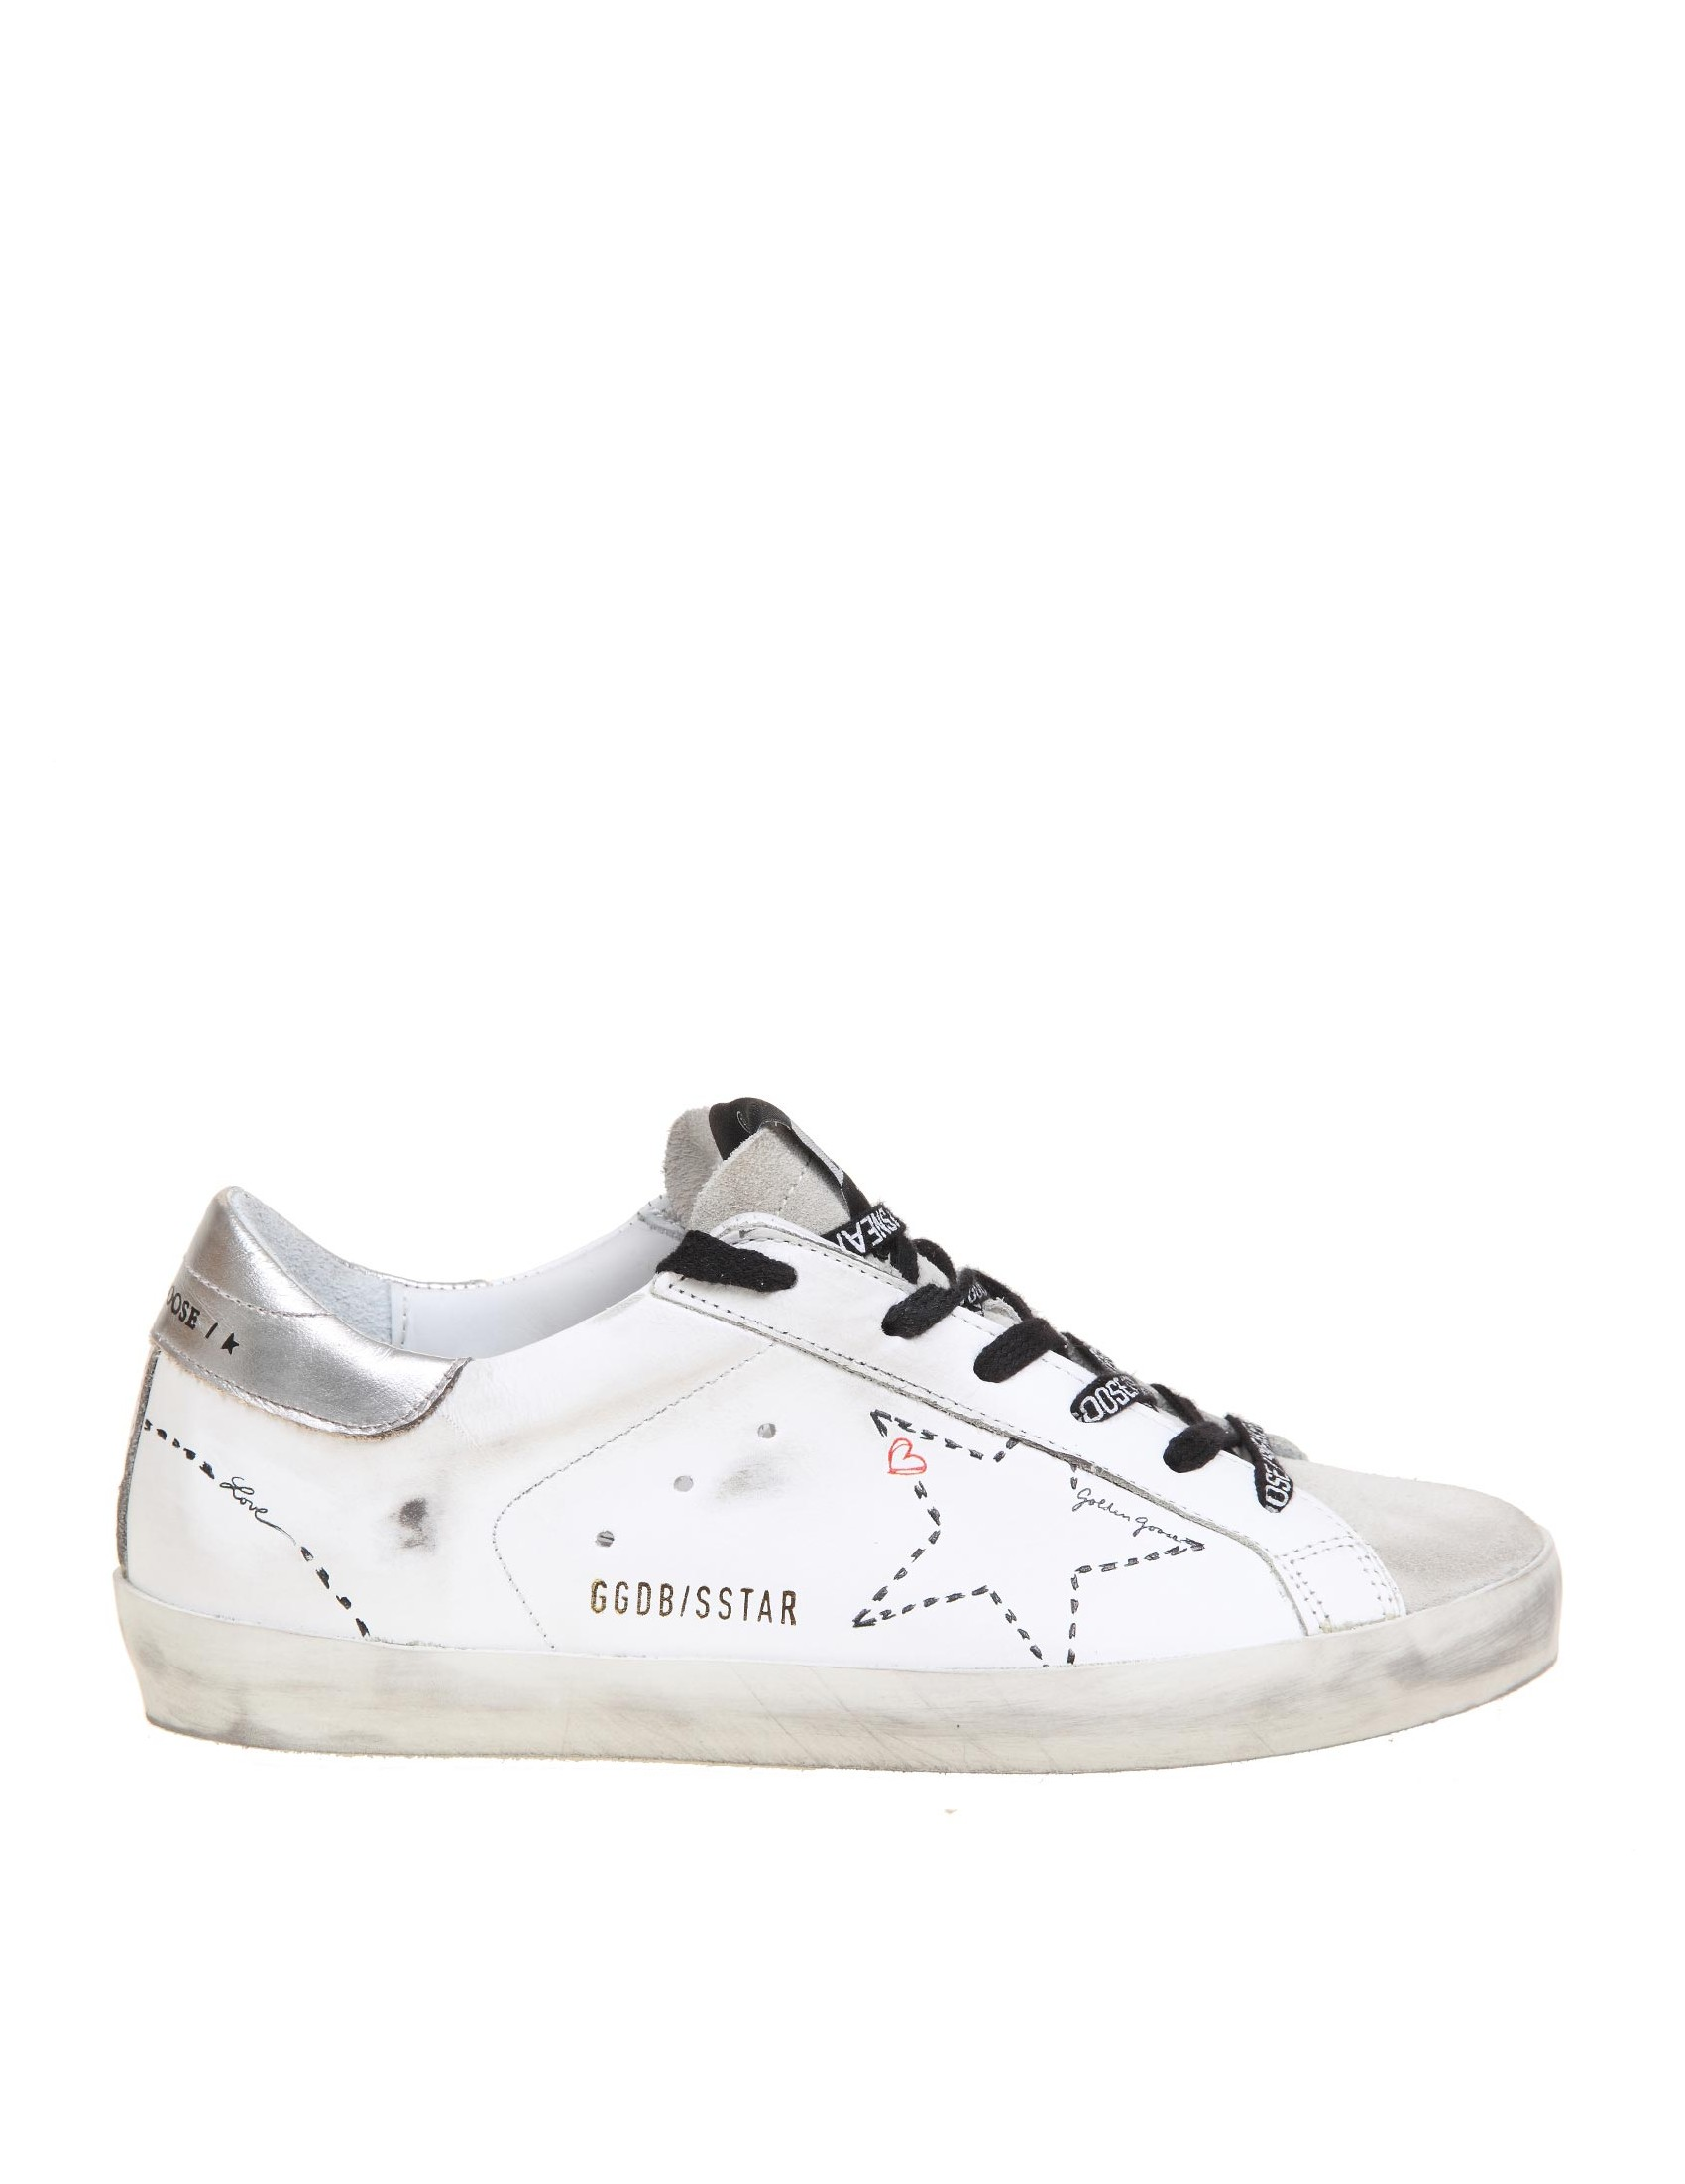 Golden Goose GOLDEN GOOSE SUPER STAR SNEAKERS IN WHITE LEATHER